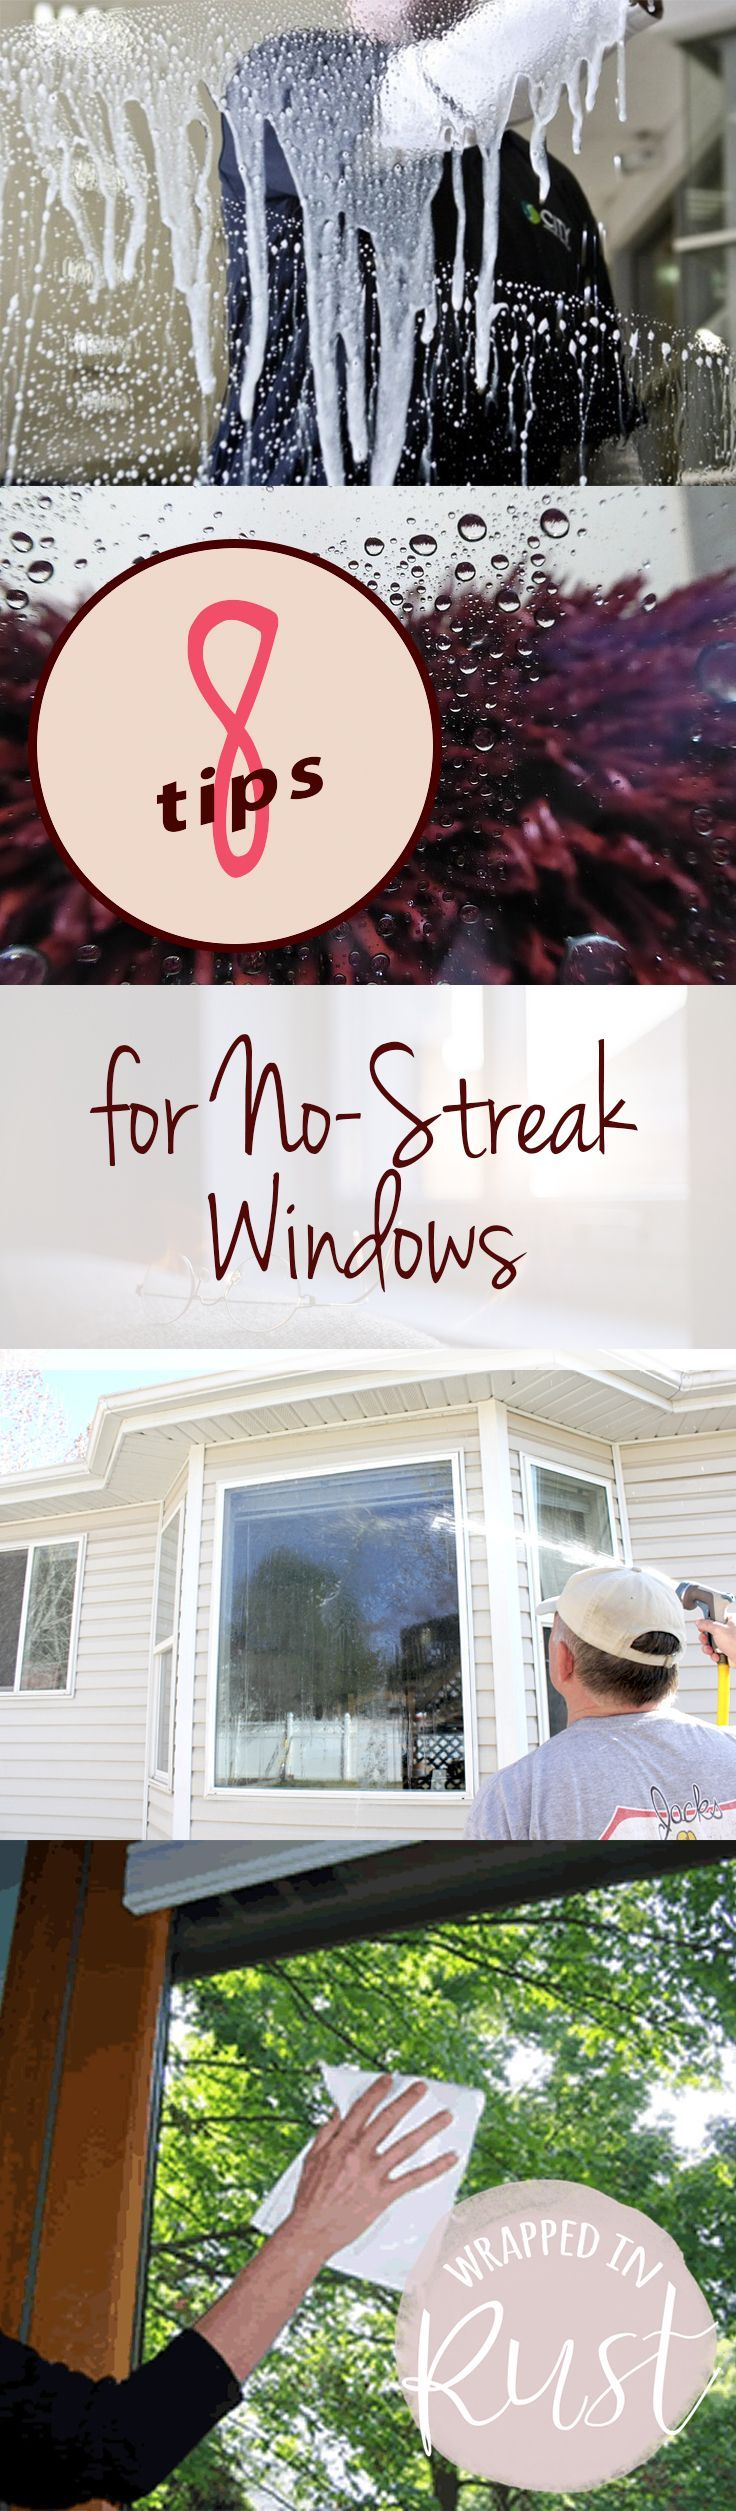 how to clean inside of windshield no streaks